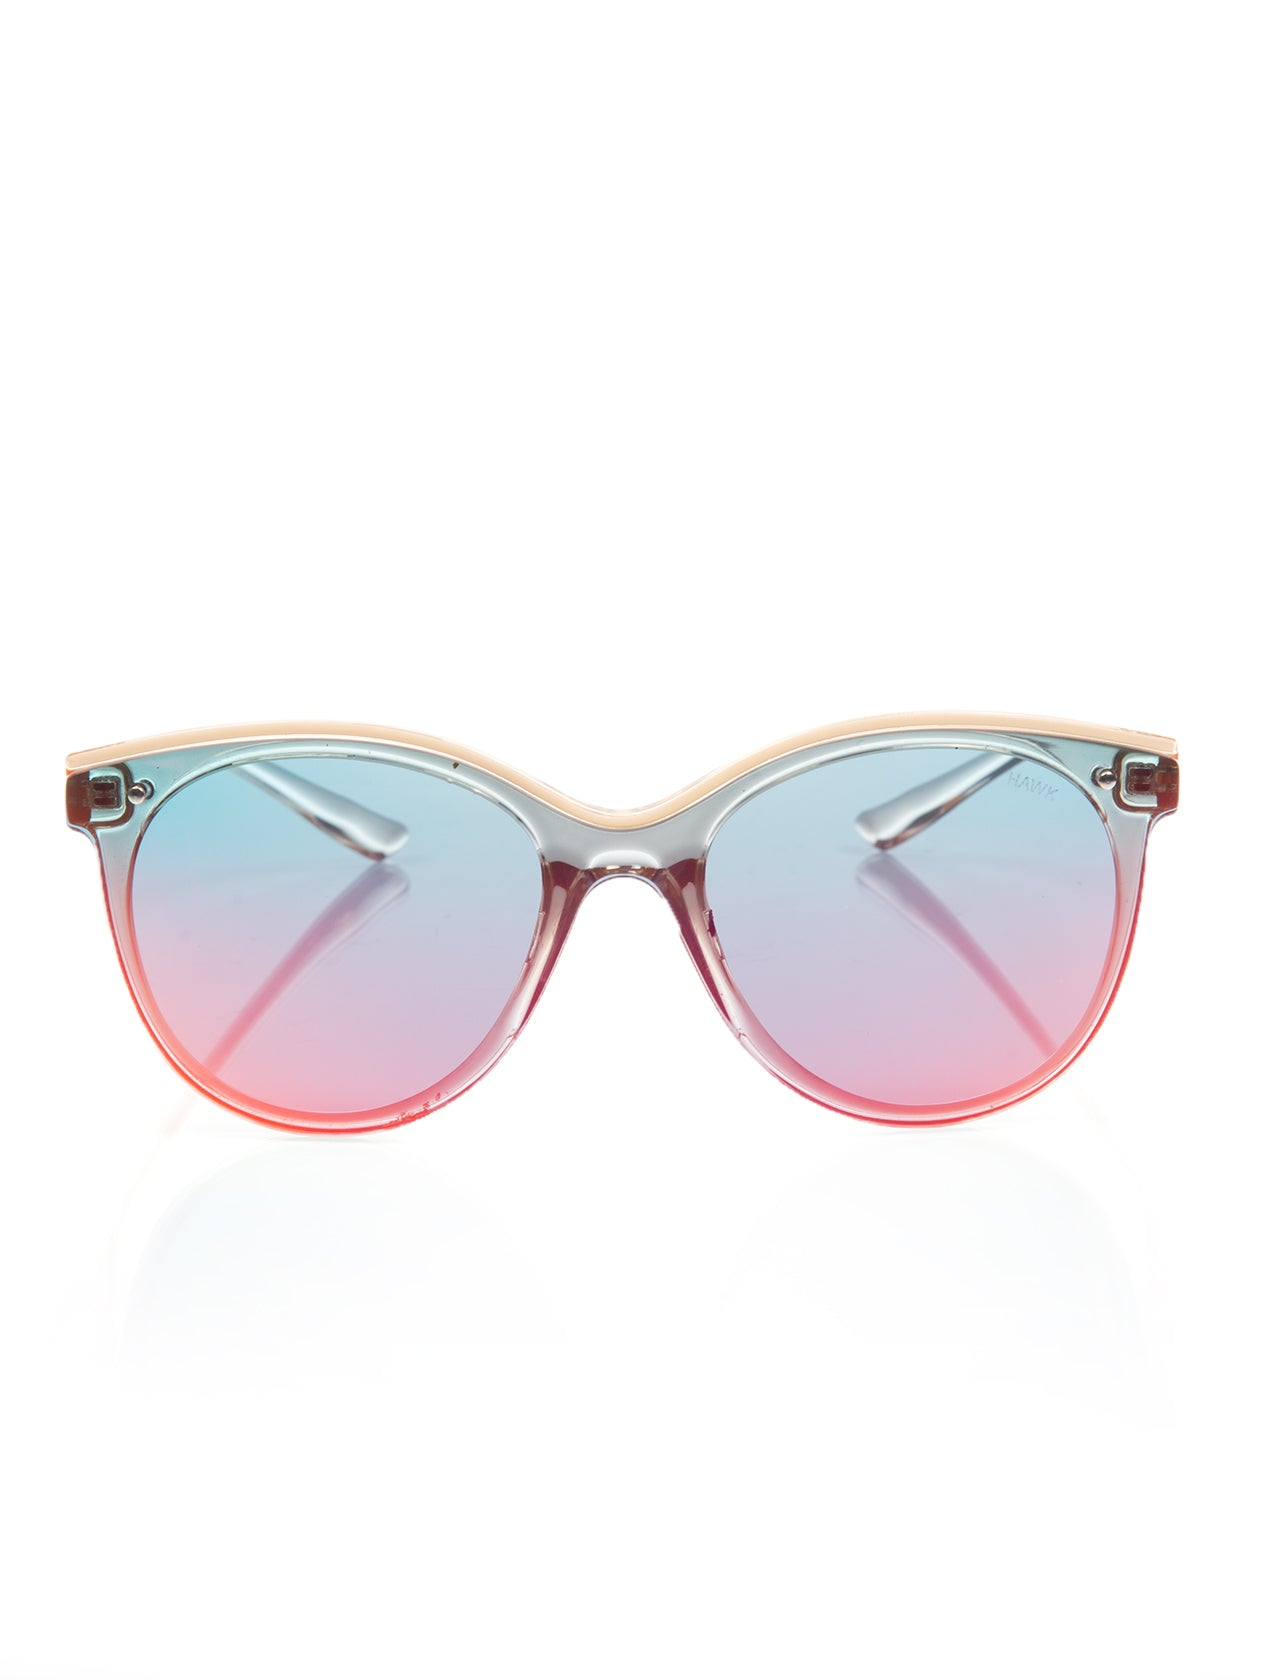 Women's Cat Eye Sunglasses